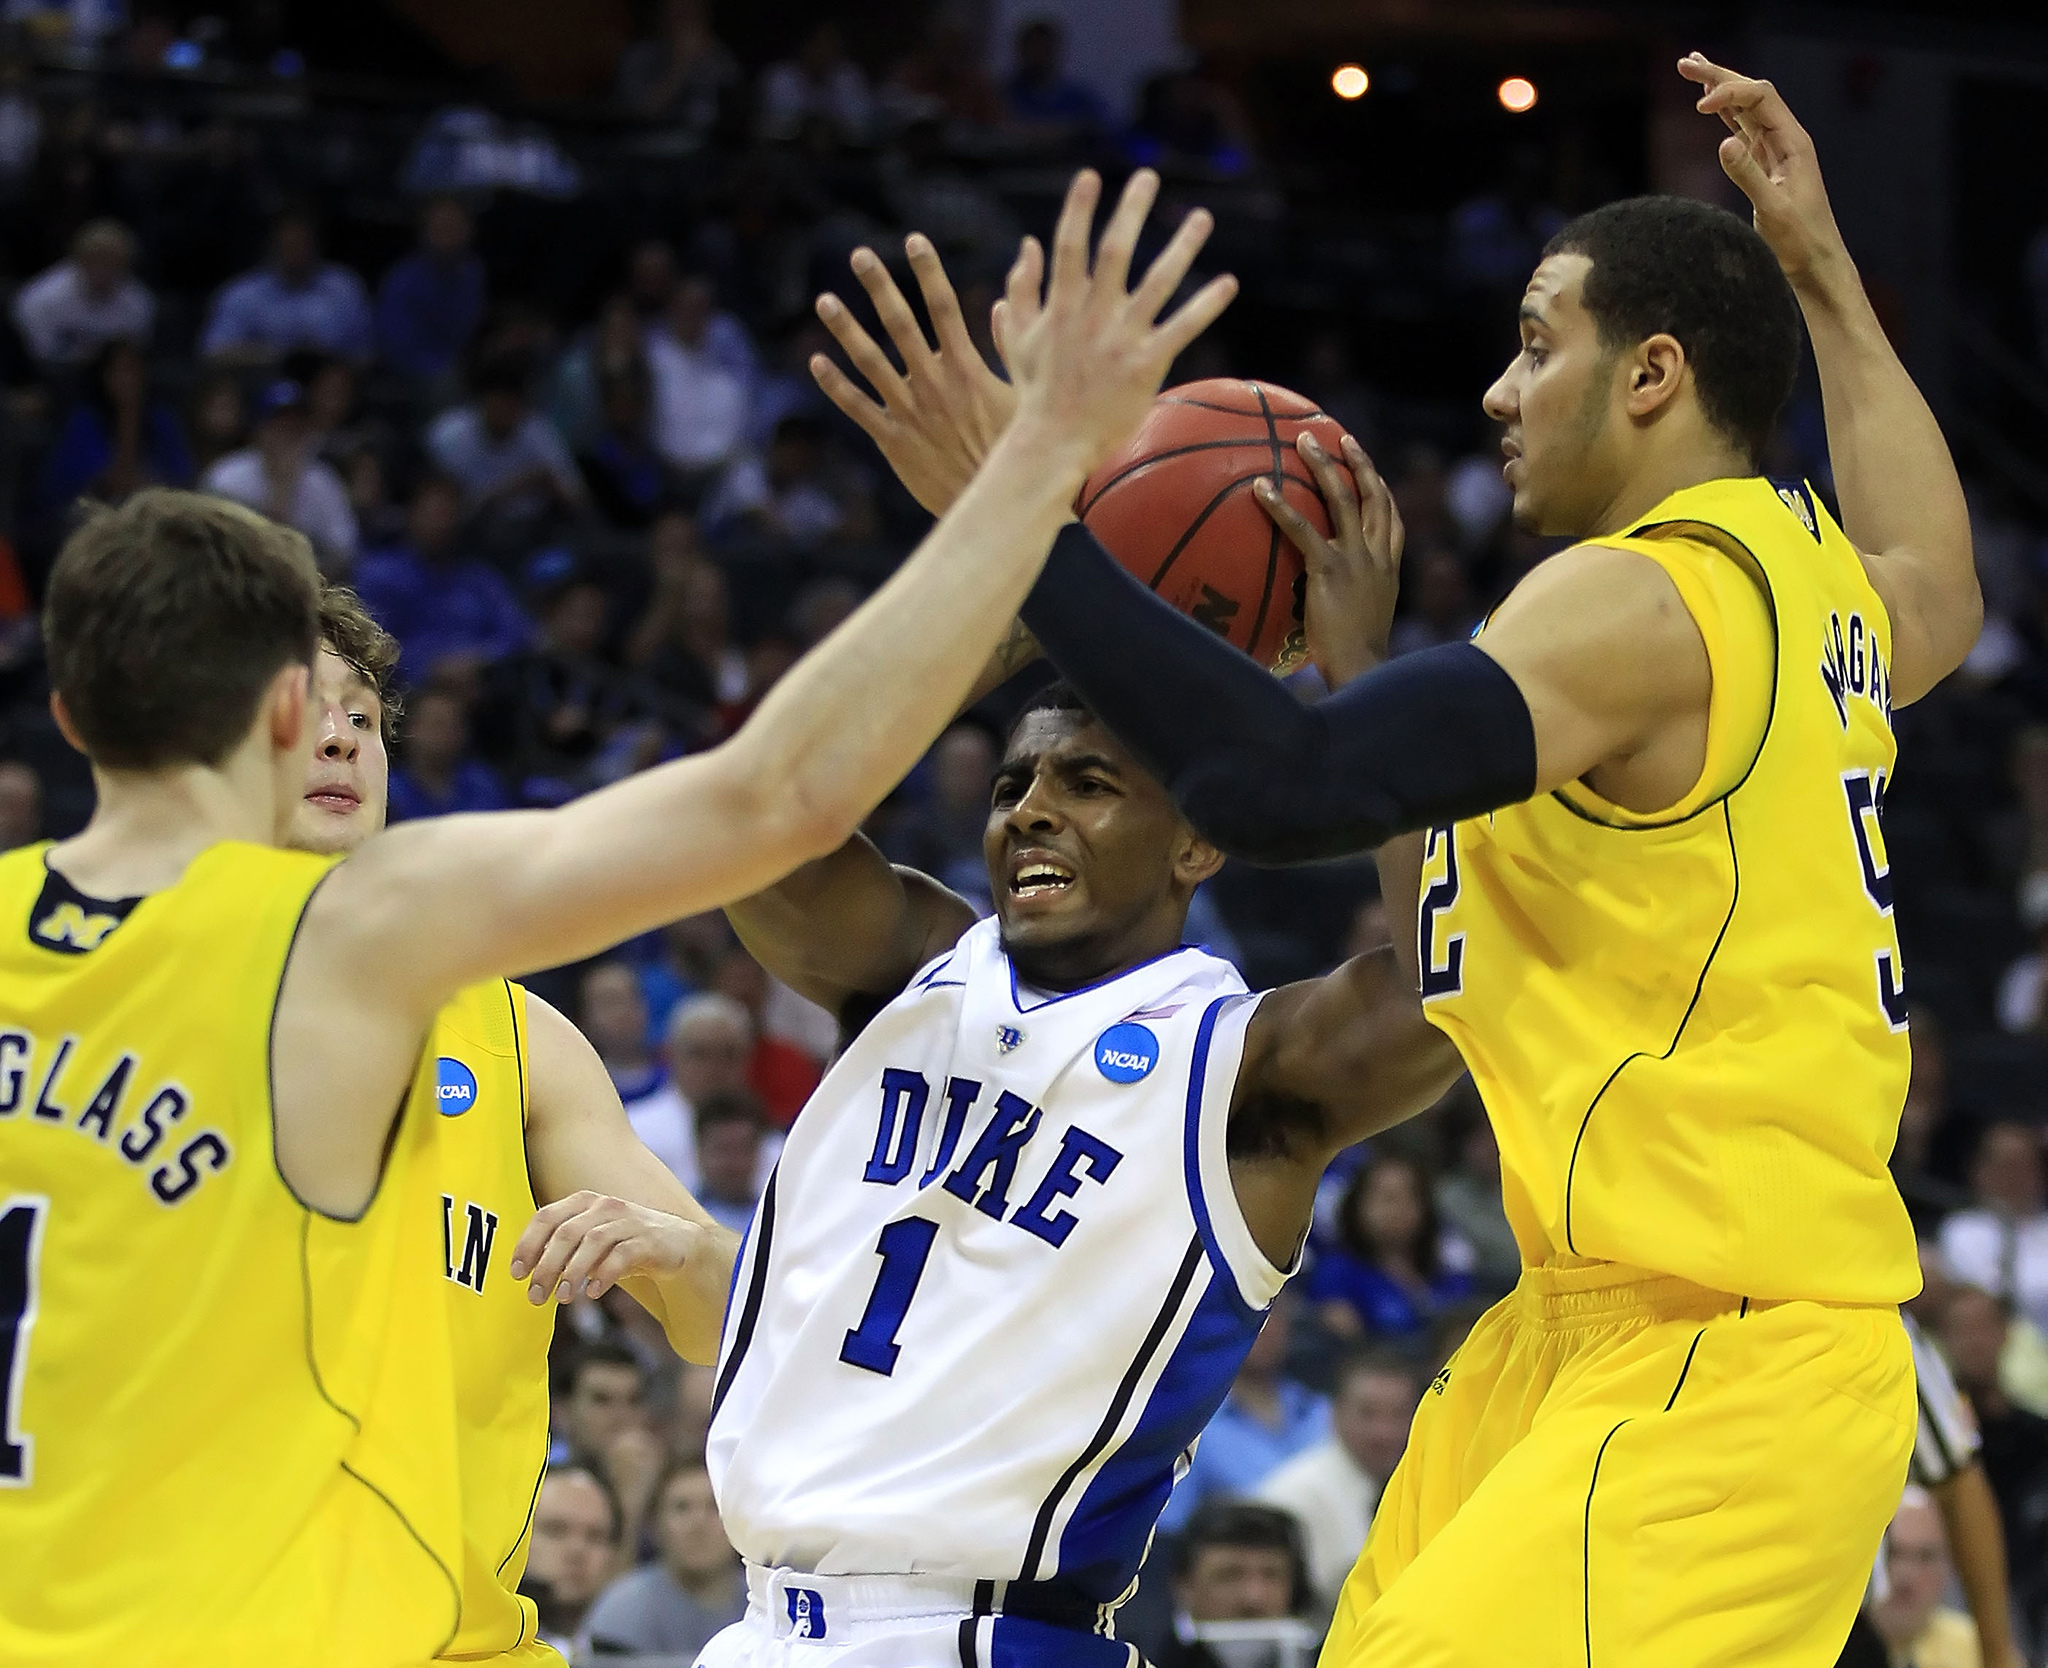 buy online 6b29c d9dc2 Only one field goal attempt dropped for Kyrie Irving against Michigan in  the NCAA tournament — a clutch, go-ahead bucket with 32 seconds left.